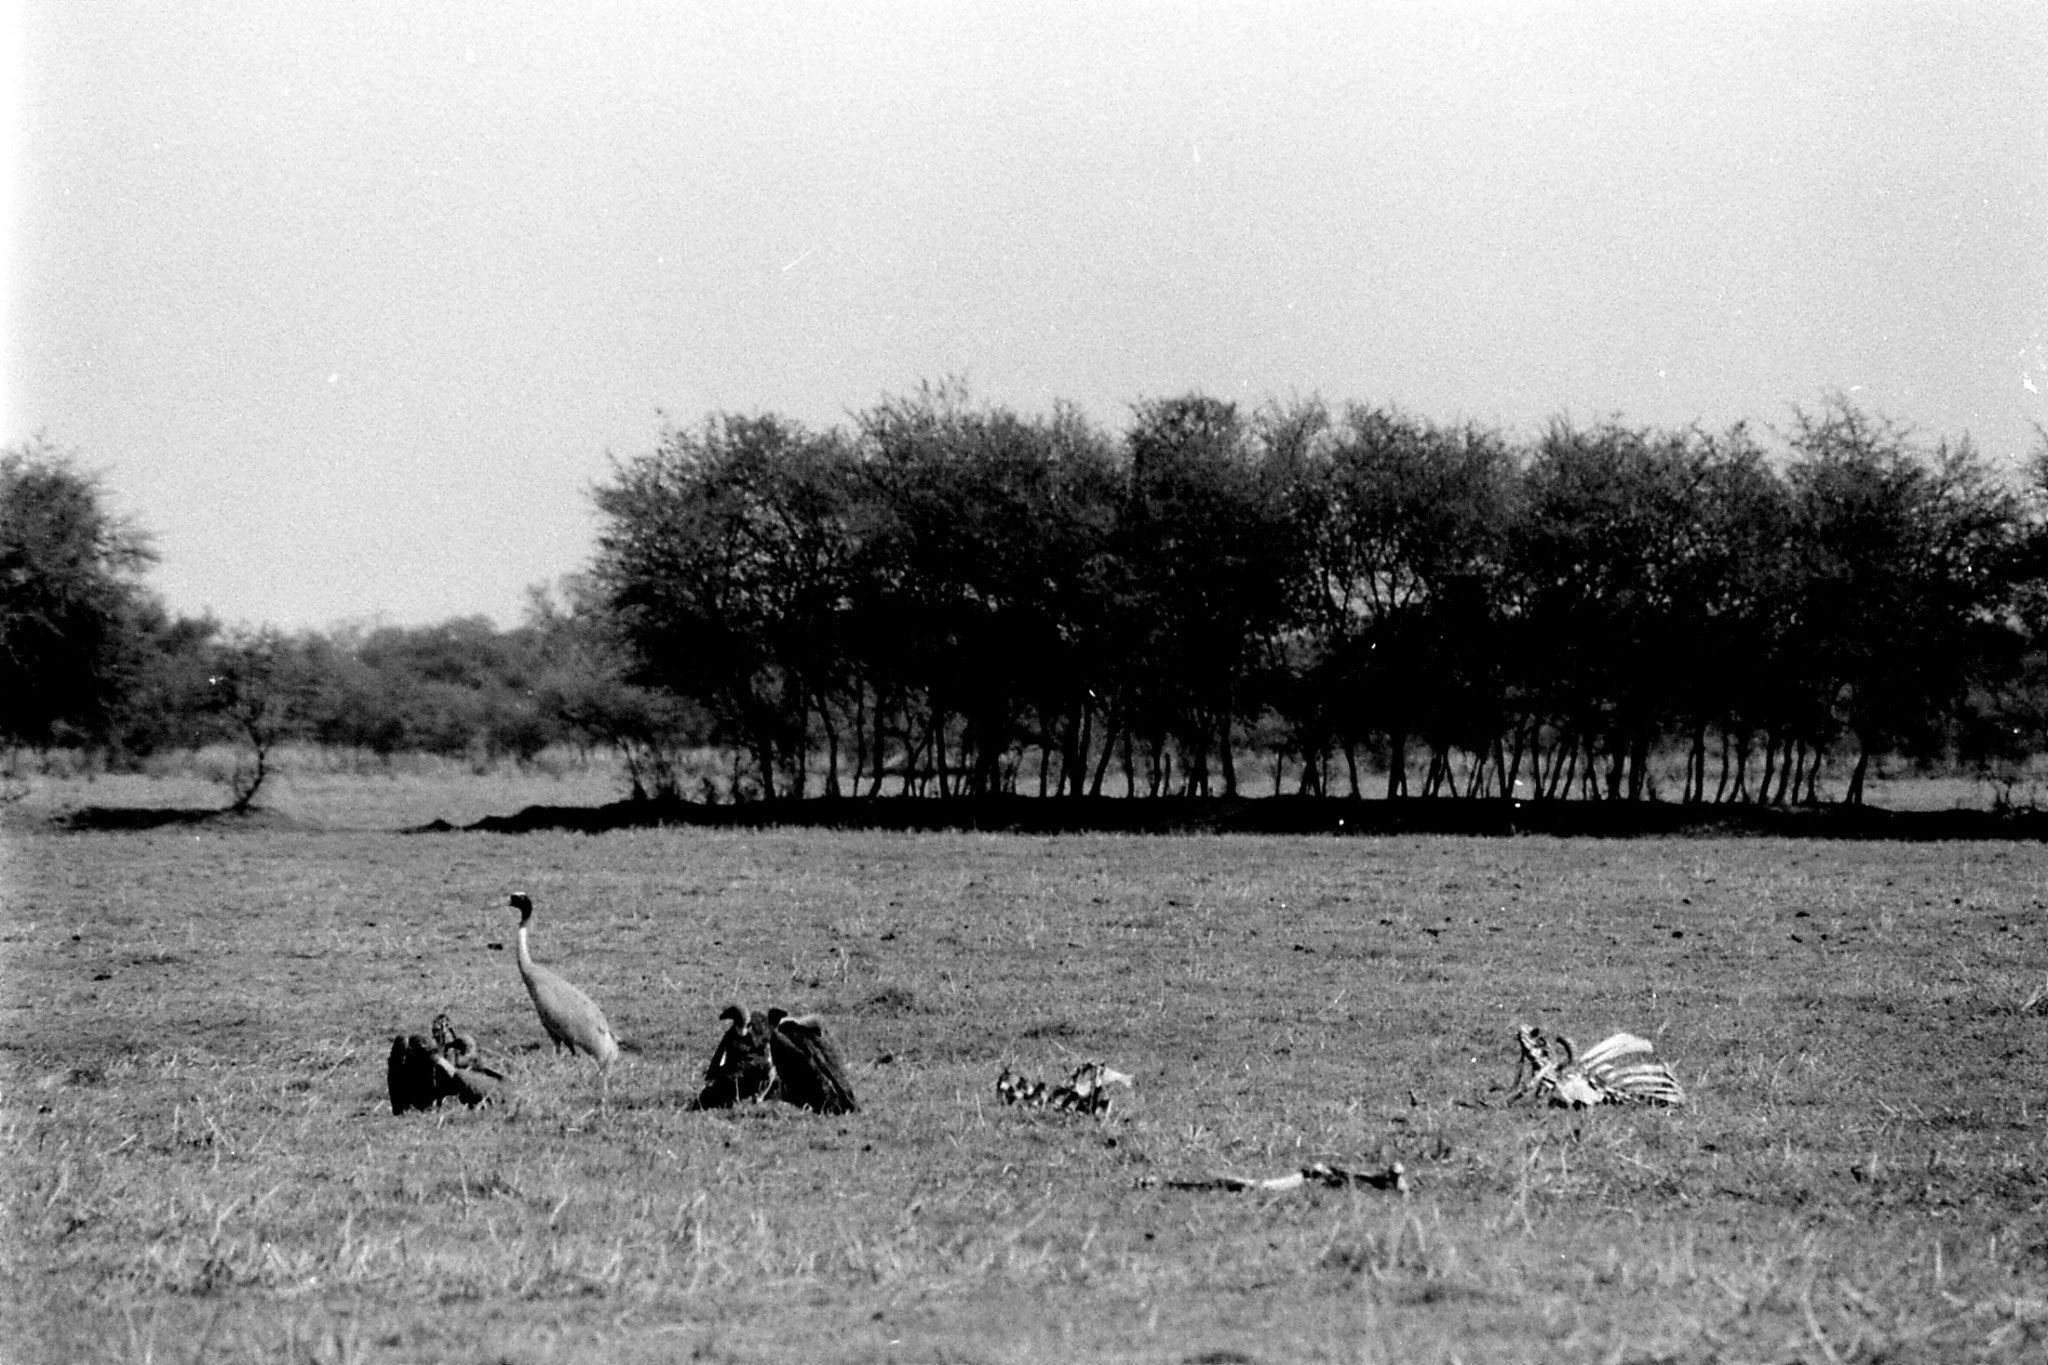 1/4/1990: 17: Bharatpur cranes, vultures and carcass